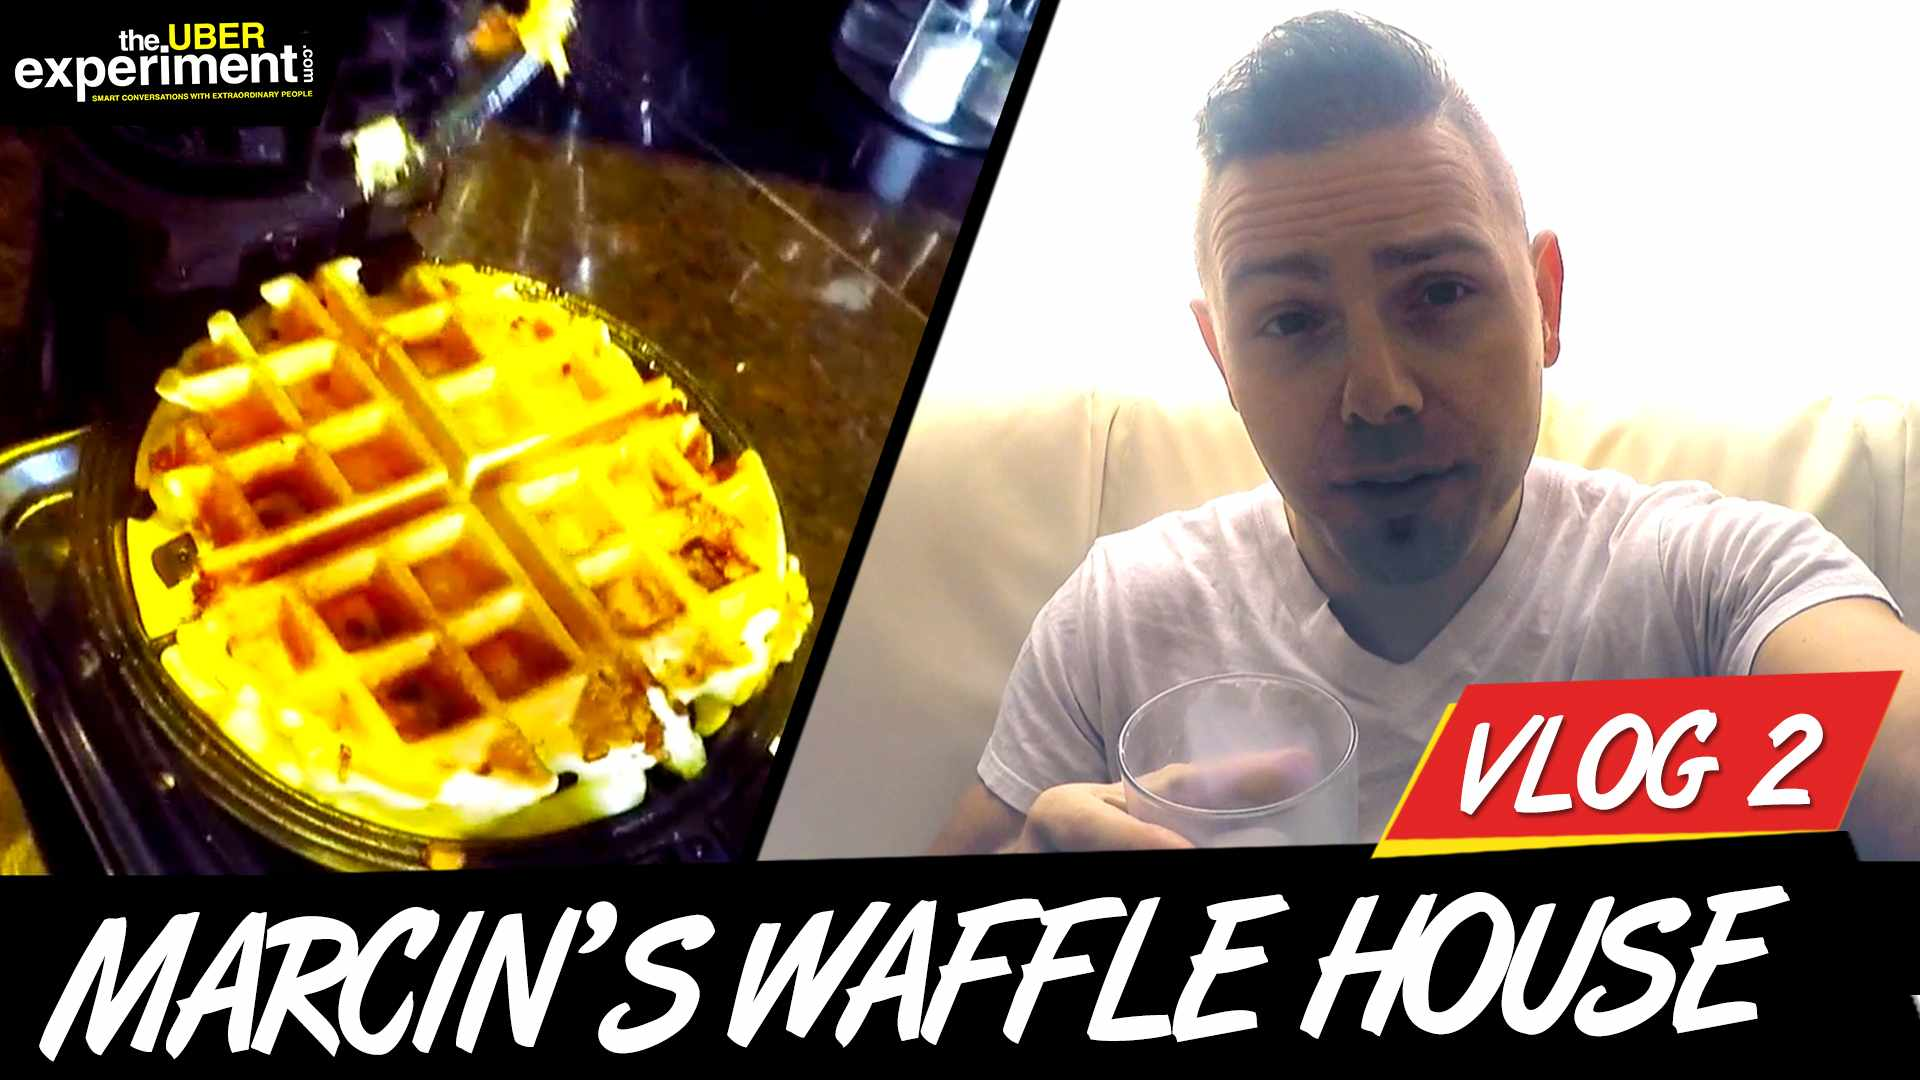 MARCIN's WAFFLE HOUSE! (The Uber Experiment Behind The Scenes /w Entrepreneur Marcin Migdal)